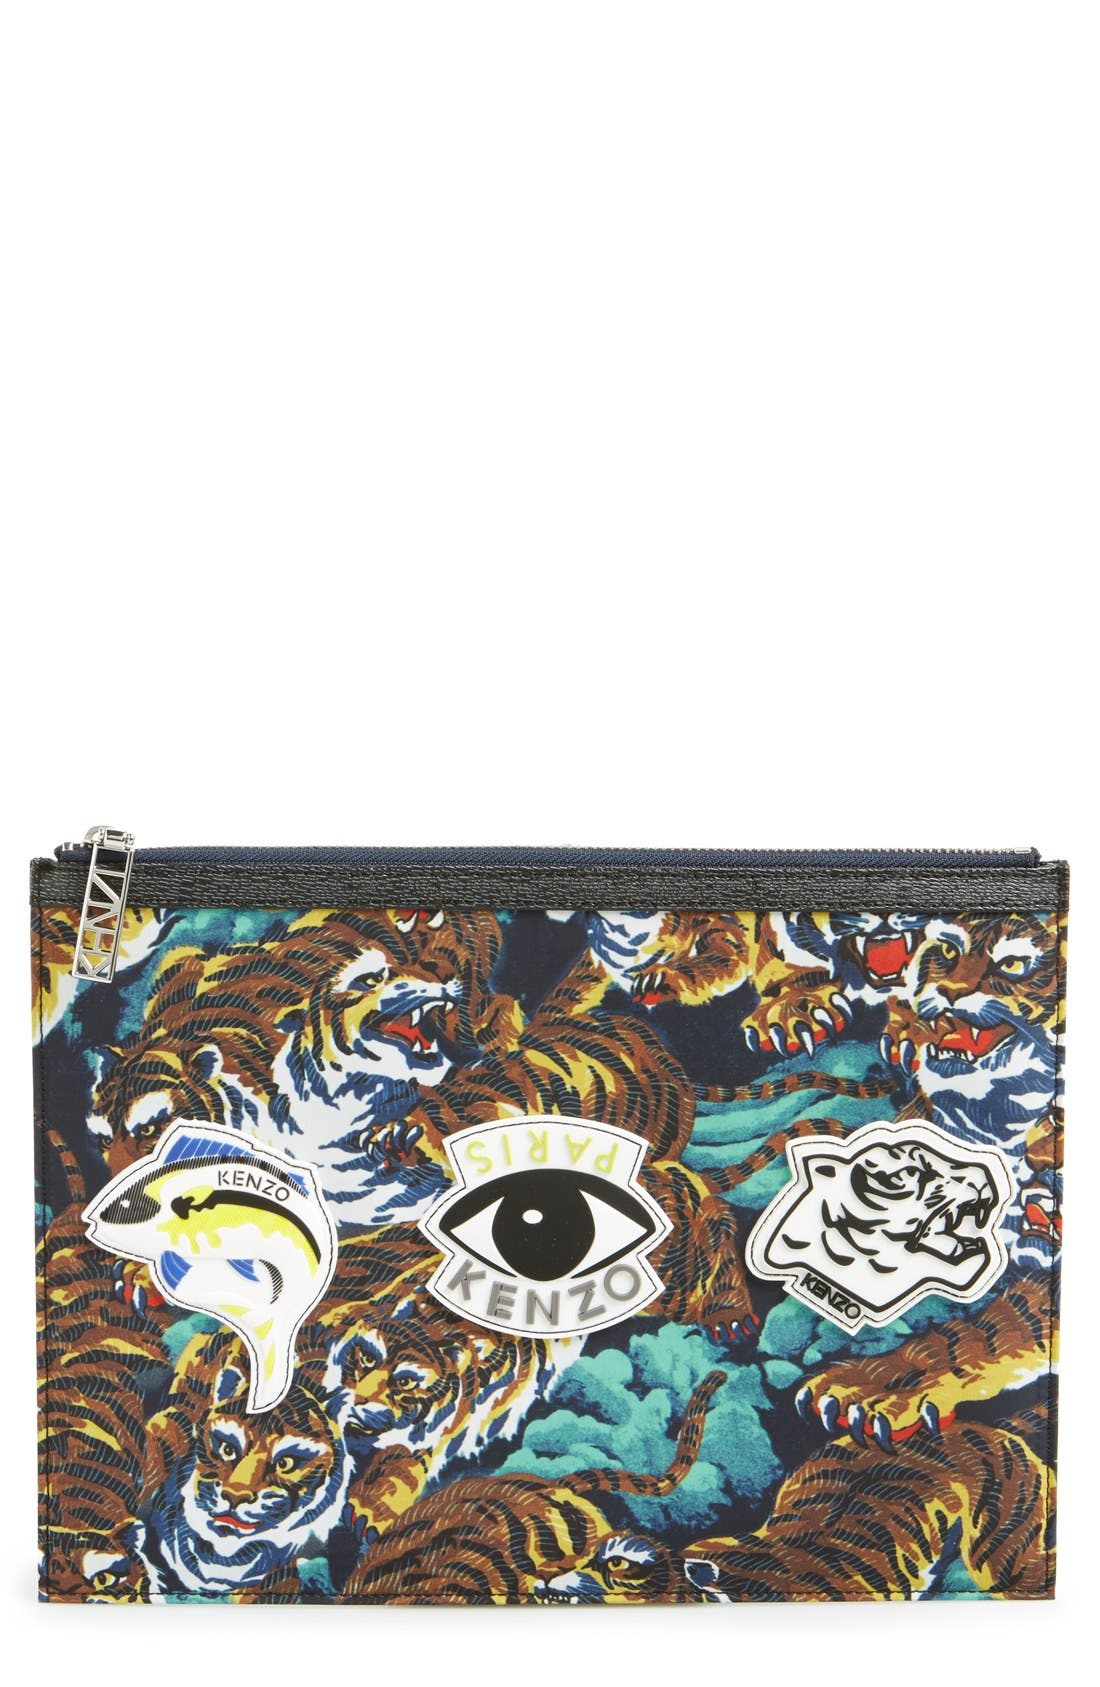 KENZO Print Pouch, Main, color, 000